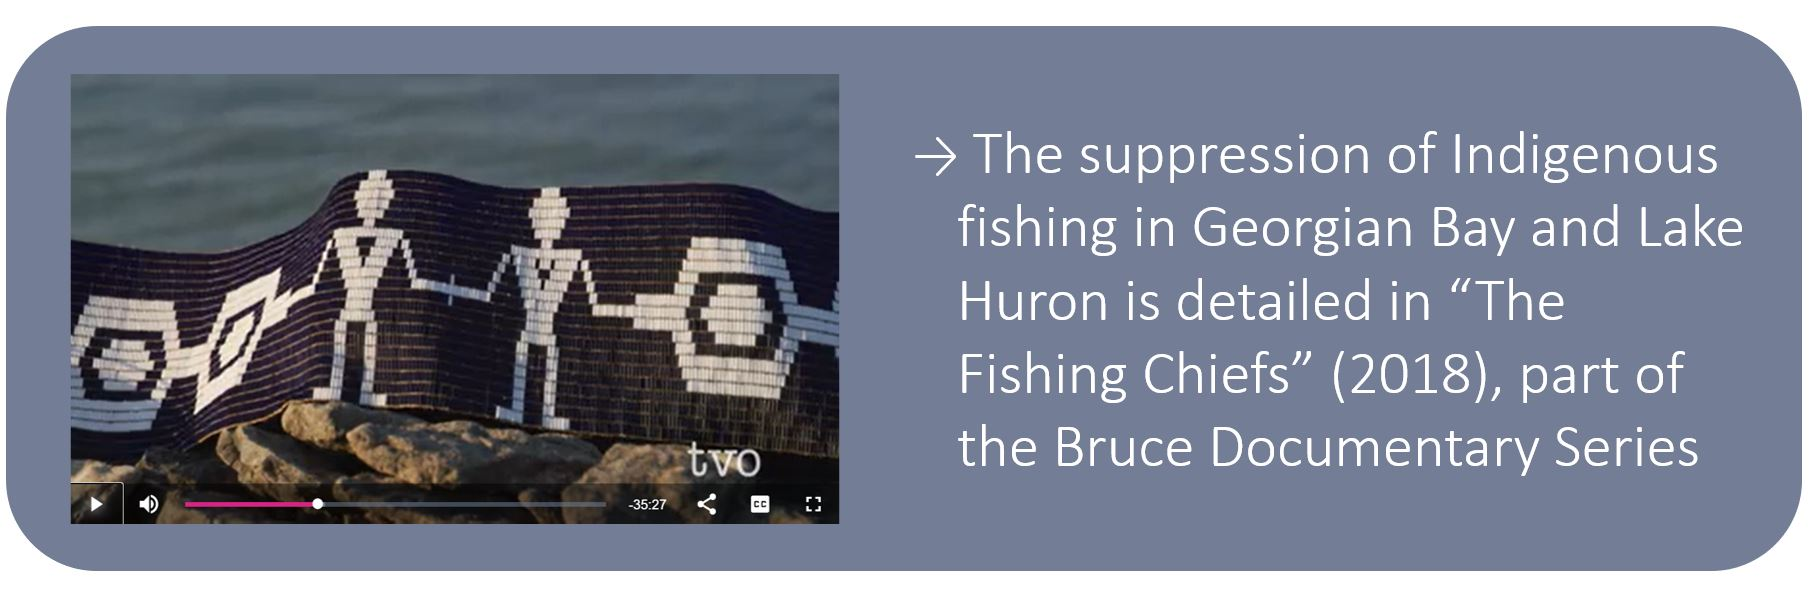 """The suppression of Indigenous fishing in Georgian Bay and Lake Huron is detailed in """"The Fishing Chiefs"""" (2018), part of the Bruce Documentary Series"""